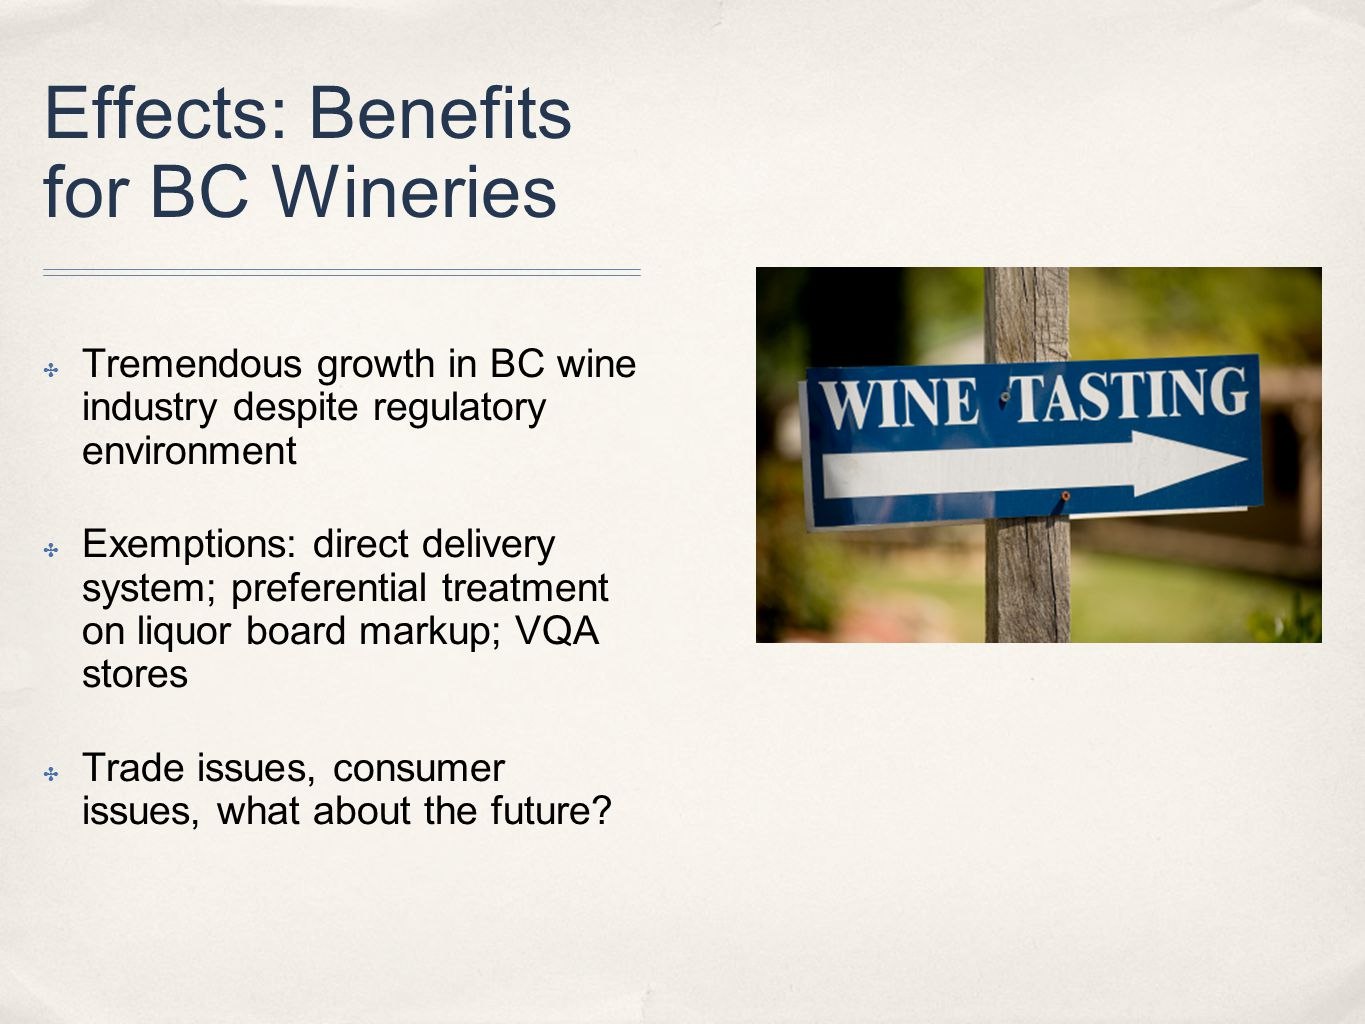 Effects: Benefits for BC Wineries ✤ Tremendous growth in BC wine industry despite regulatory environment ✤ Exemptions: direct delivery system; preferential treatment on liquor board markup; VQA stores ✤ Trade issues, consumer issues, what about the future